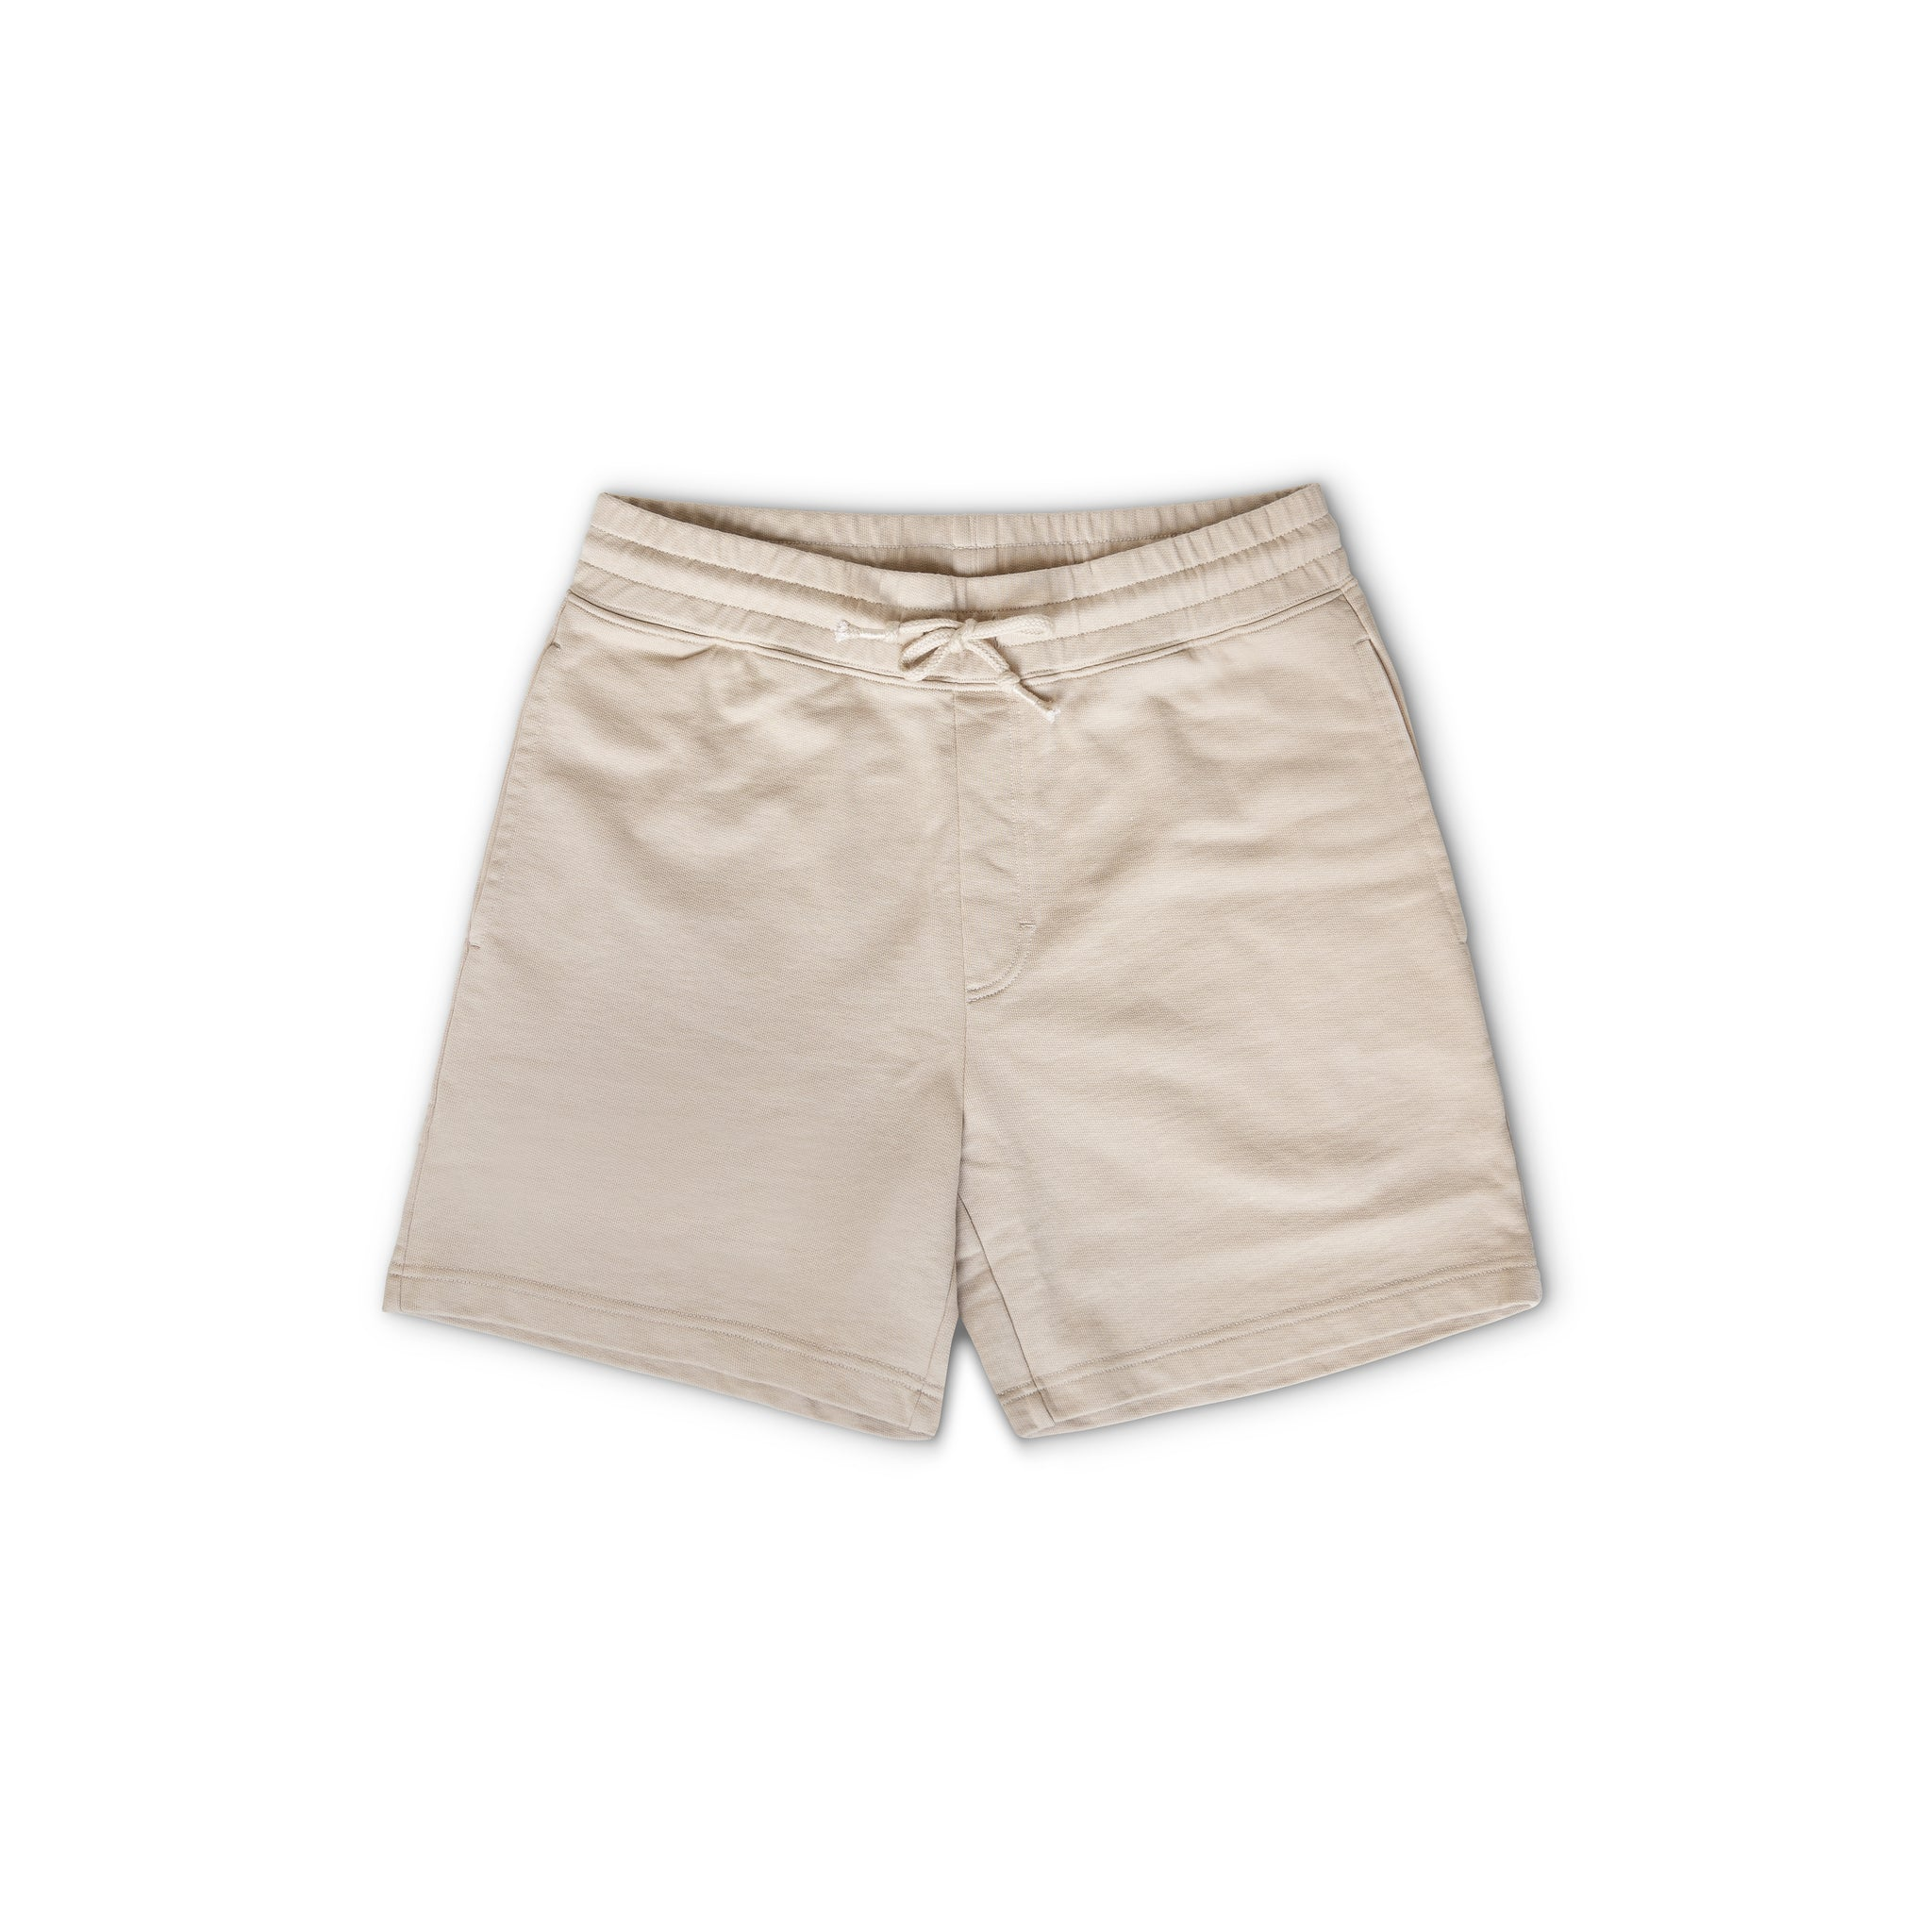 Sweatpant Short in Khaki made from organic cotton - Alternate